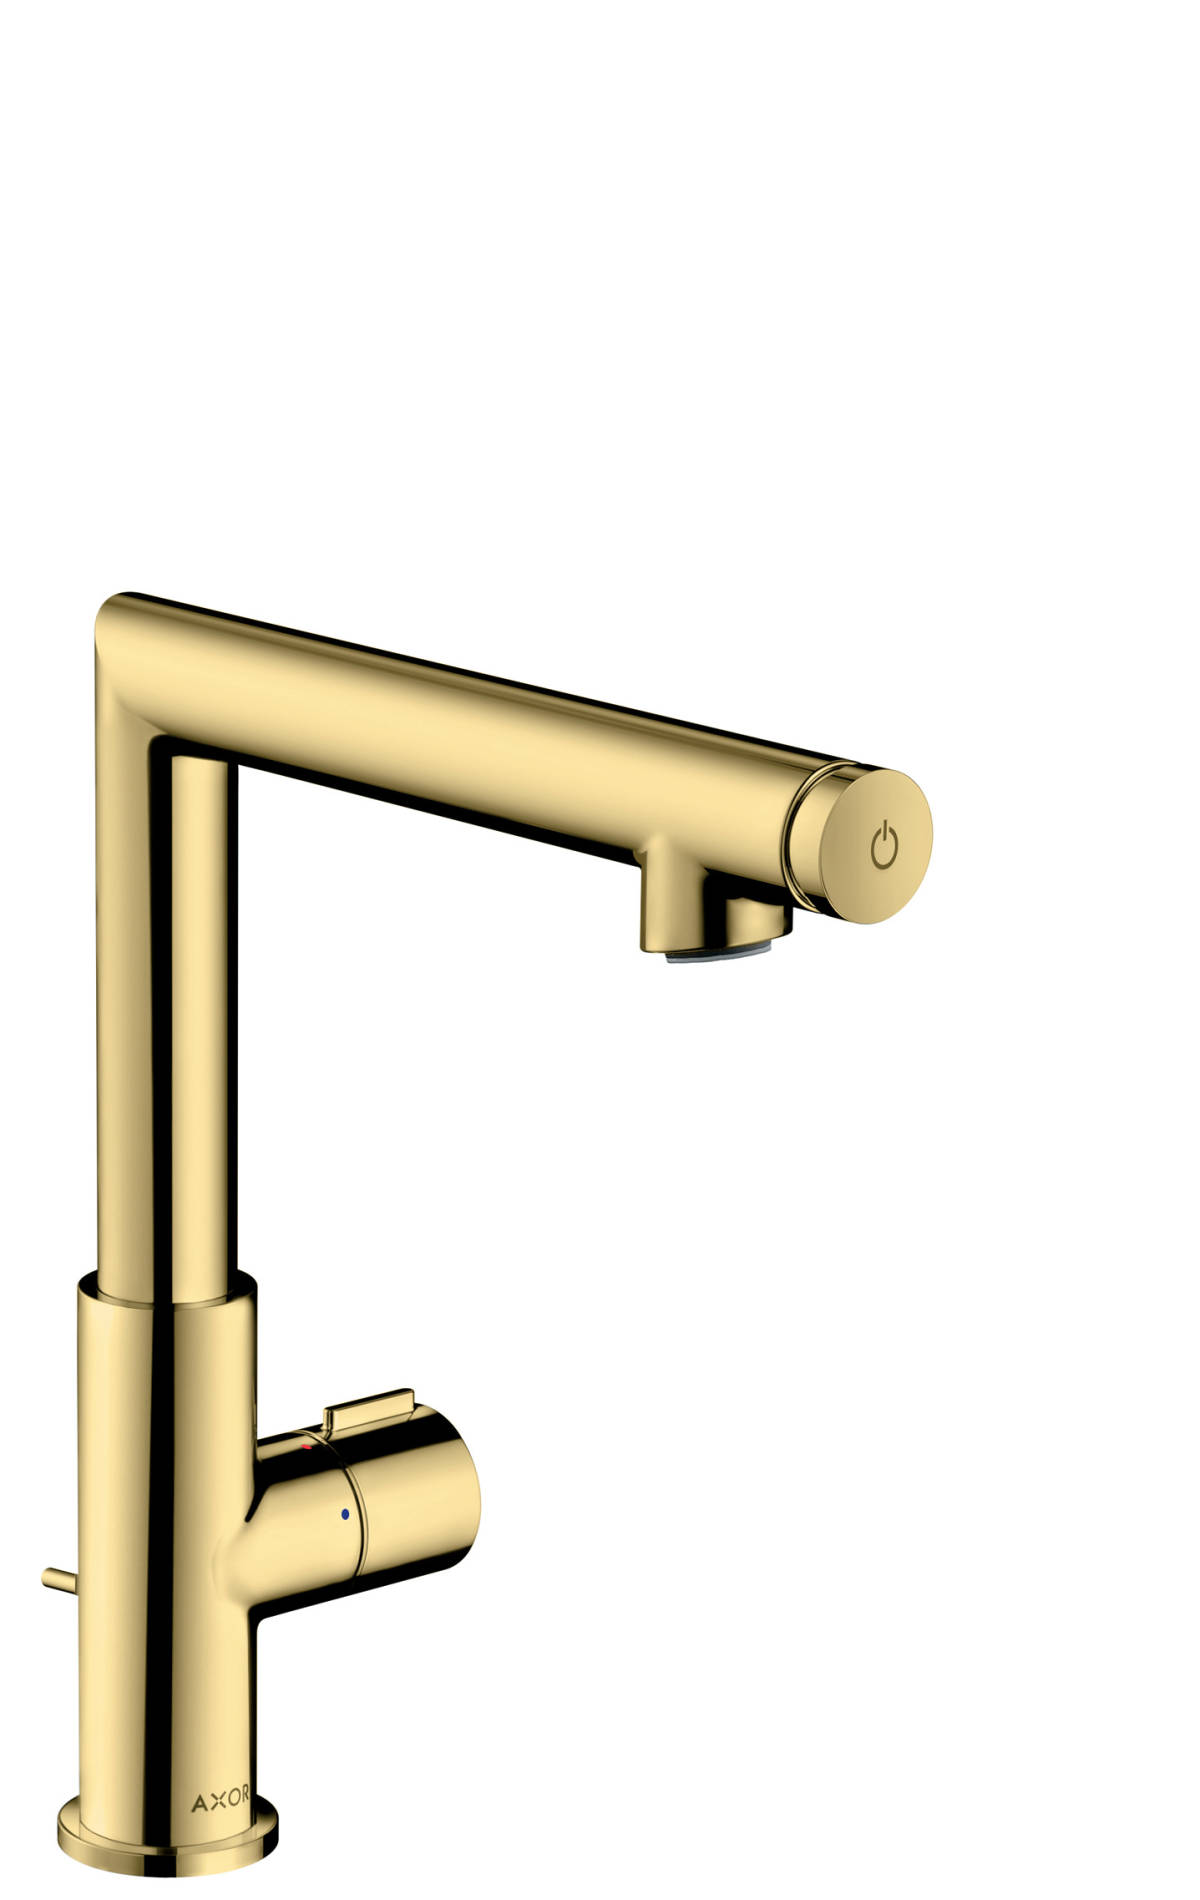 Basin mixer Select 220 with pop-up waste set, Polished Brass, 45016930